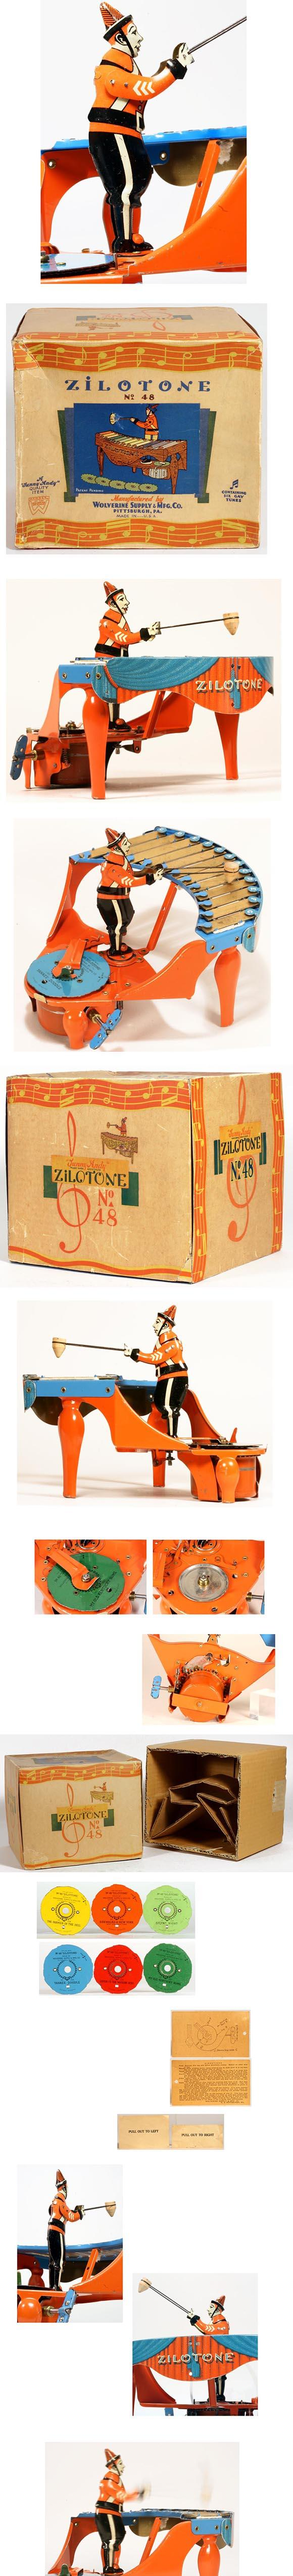 c.1930 Wolverine, No.48 Zilotone in Original Box